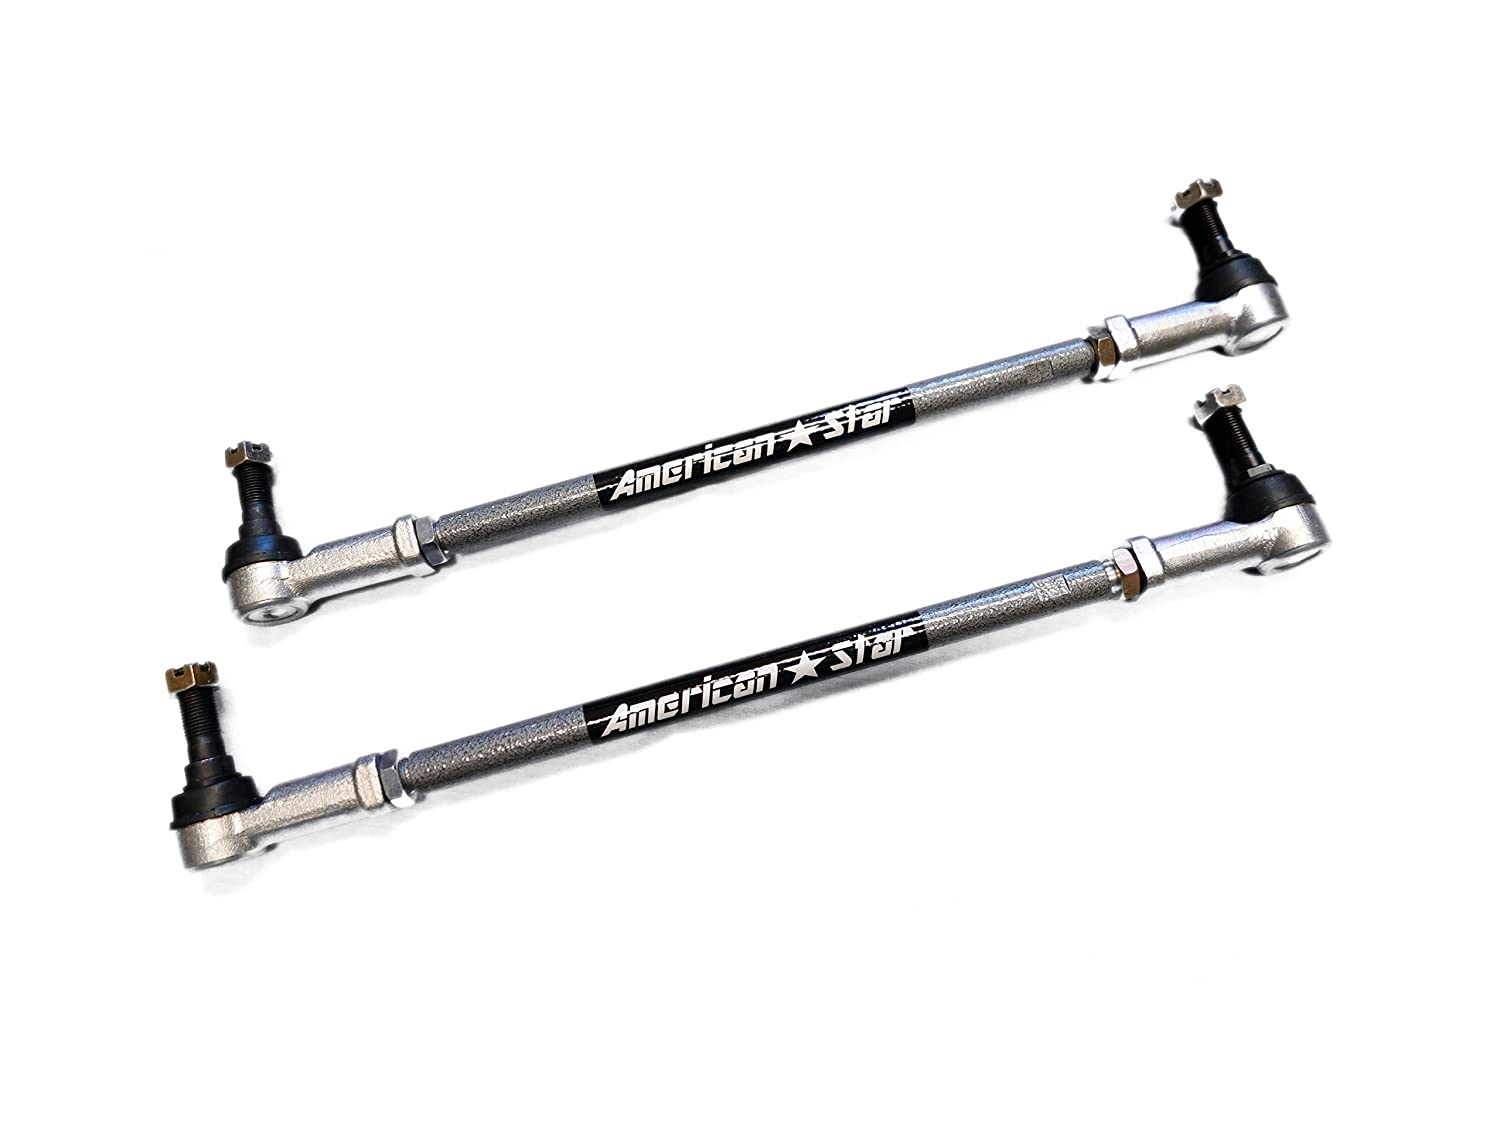 American Star 4130 Chromoly Tie Rod Upgrade Kit 2006 Suzuki King Quad LT-A 700 X